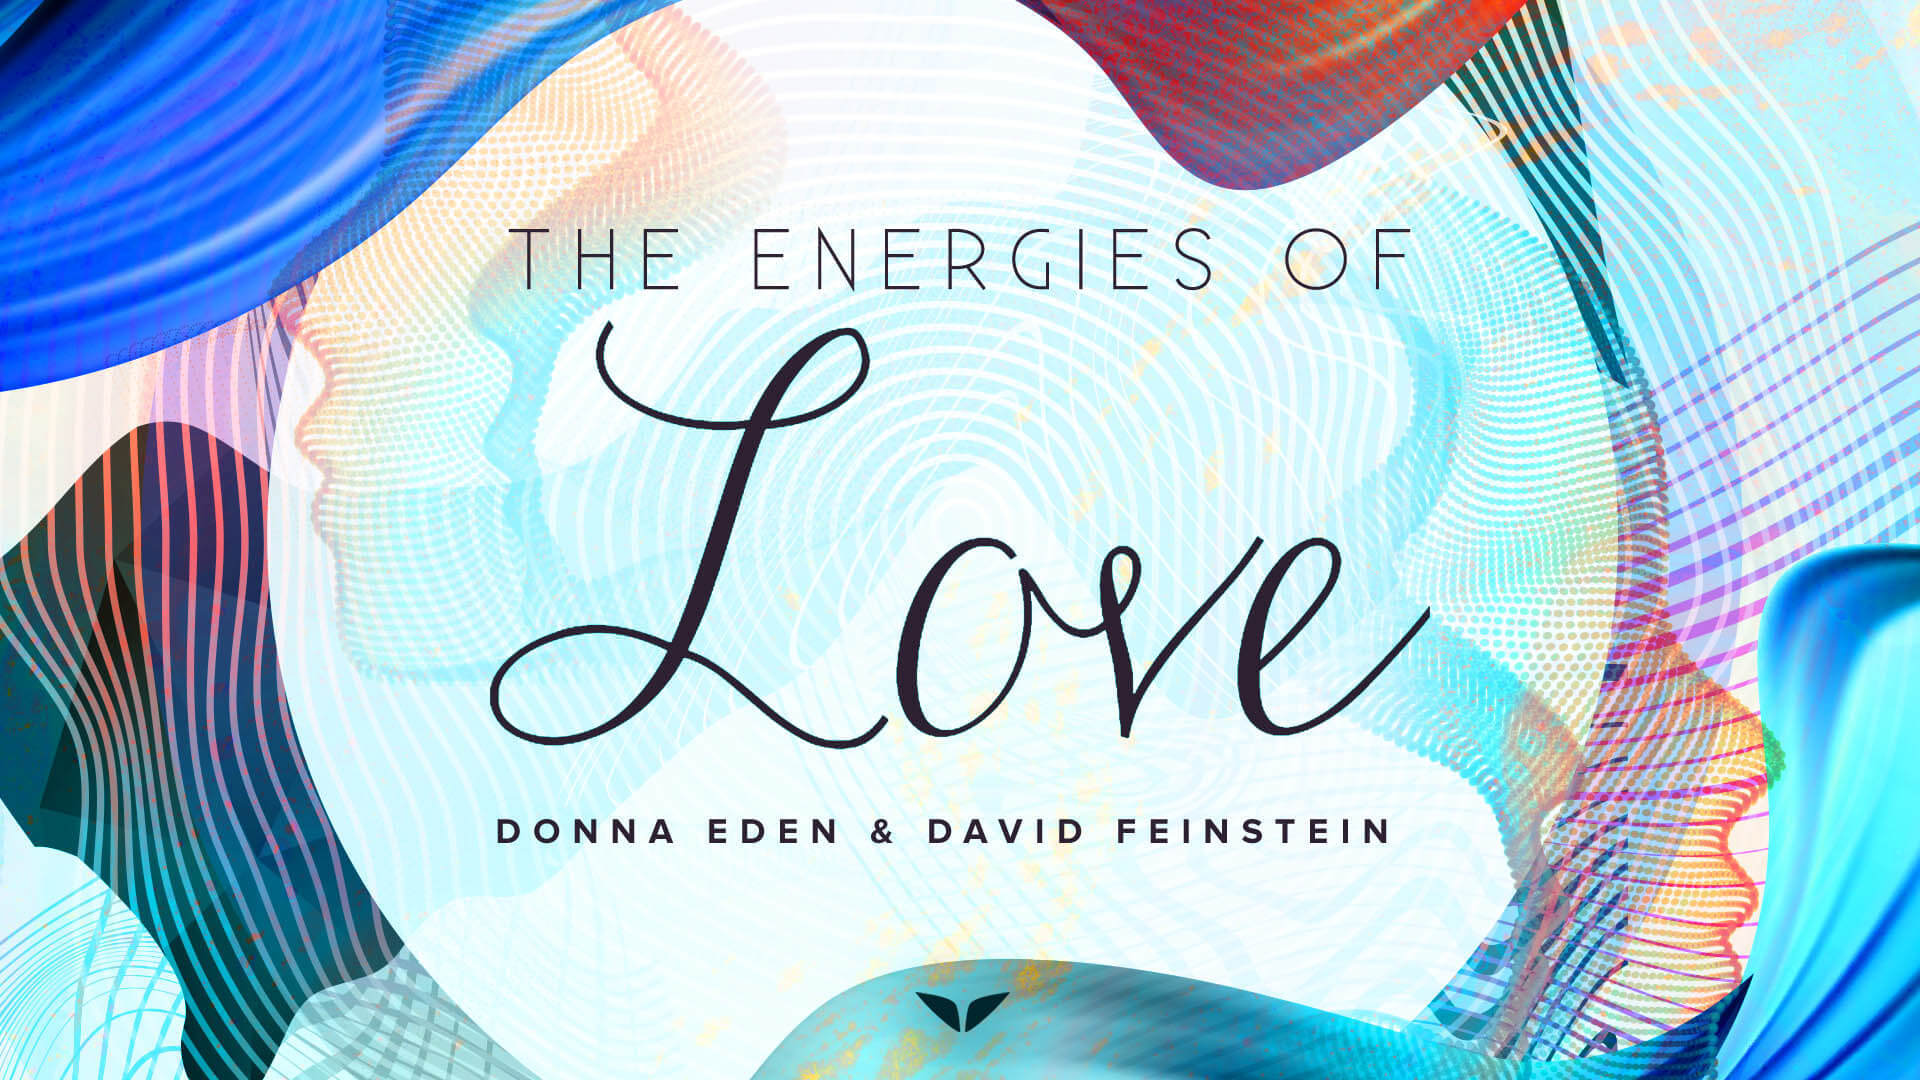 The energies of love Mindvalley program ad.